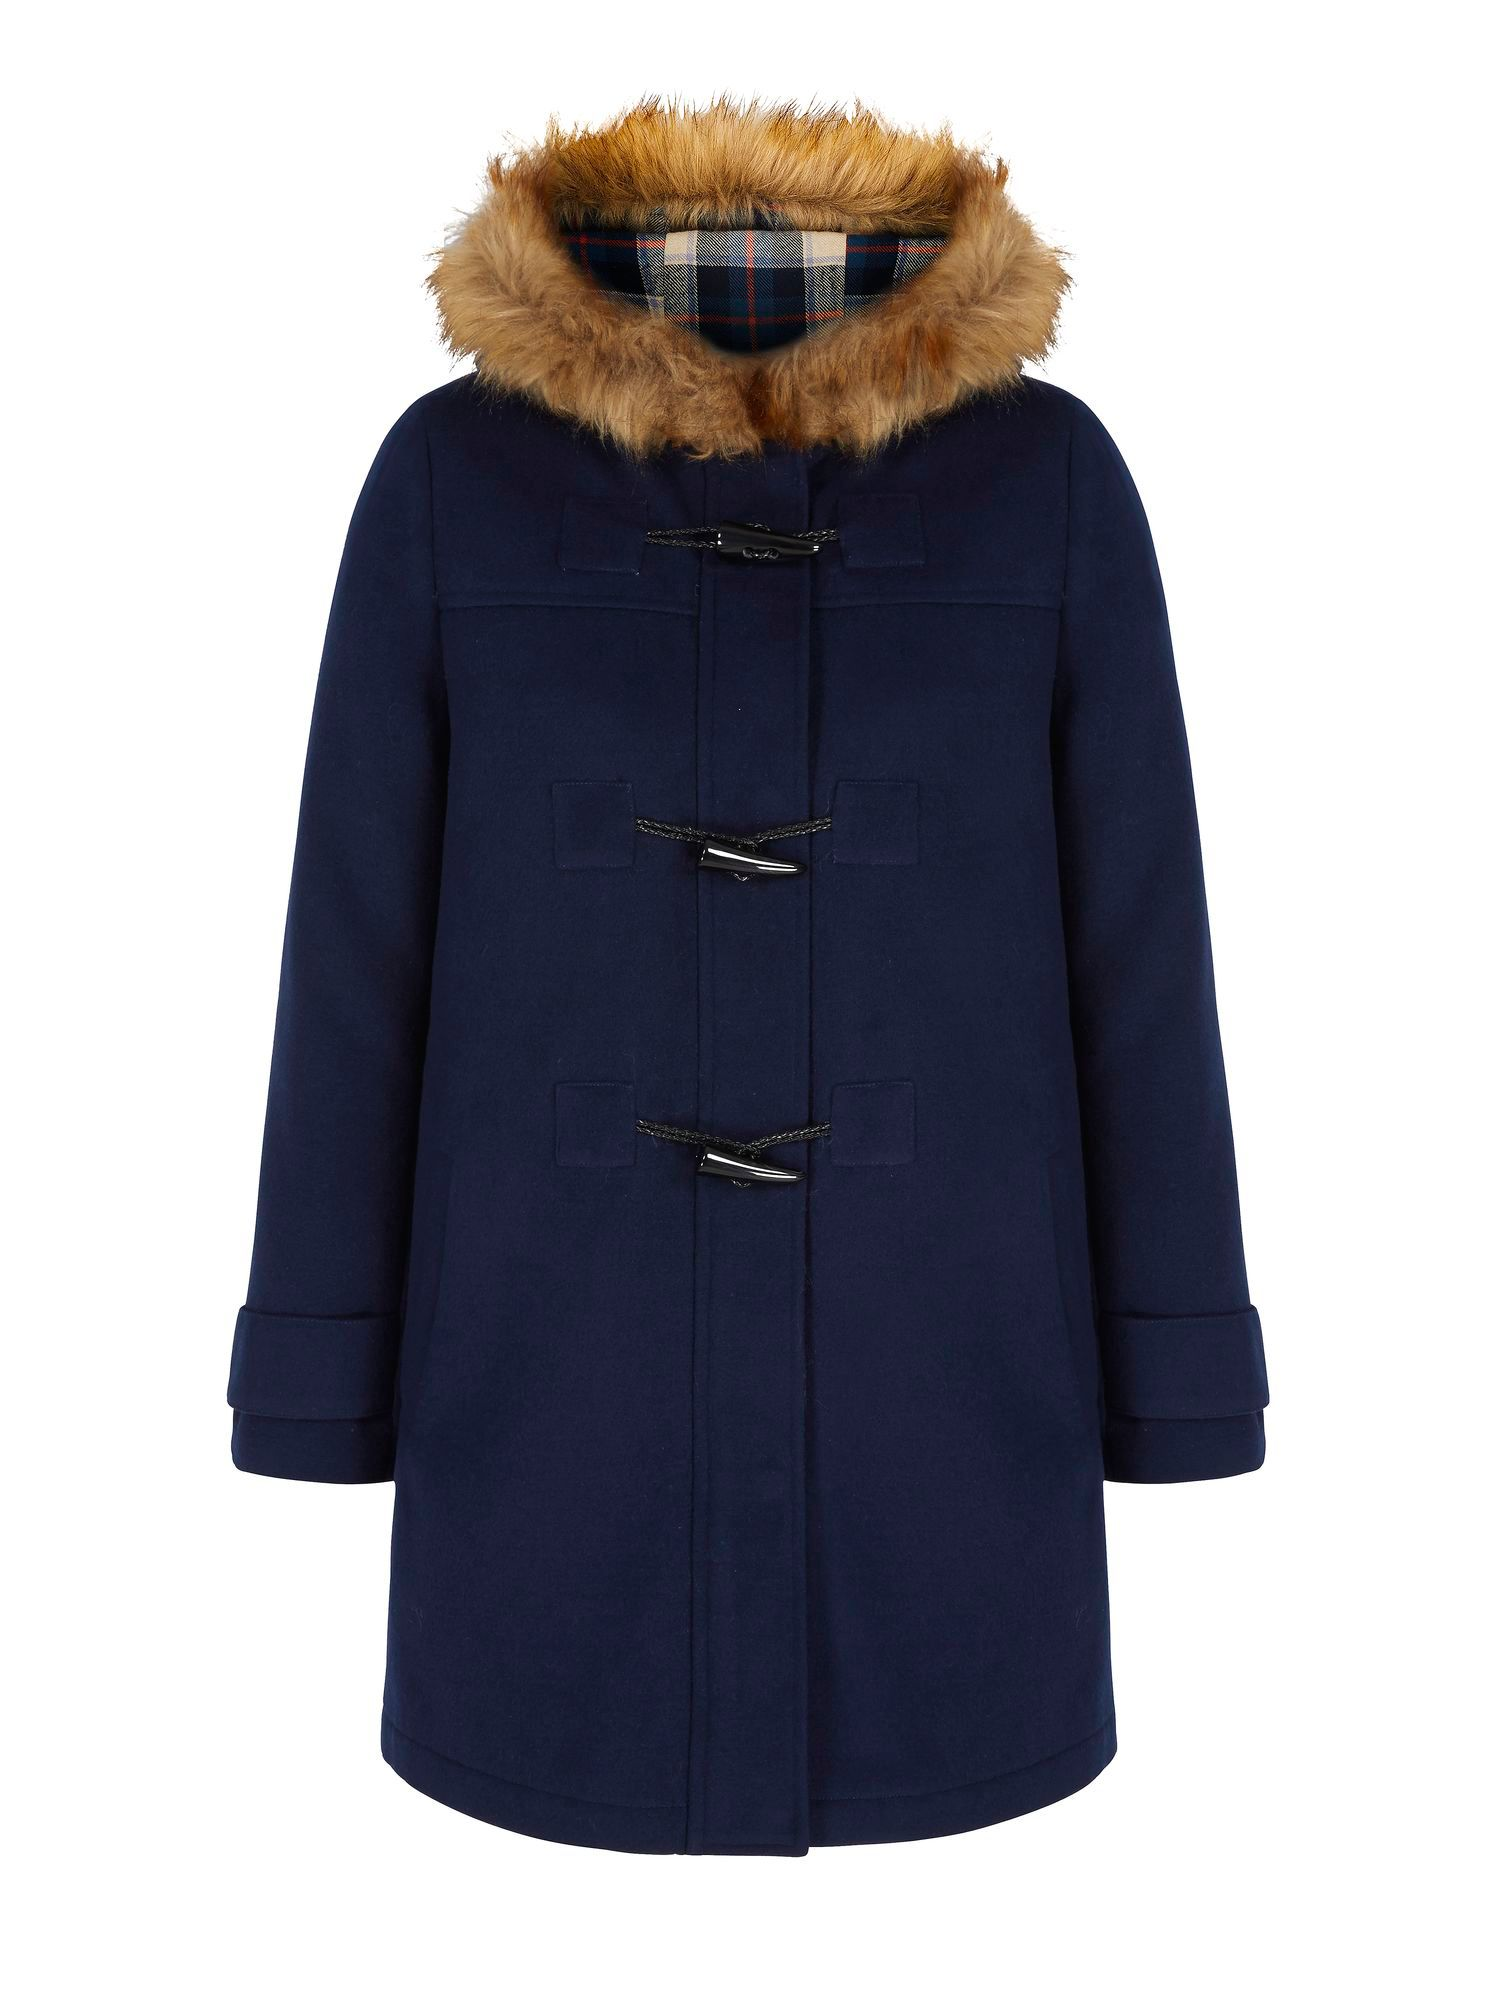 Yumi Faux Fur Hood Duffle Coat - House of Fraser